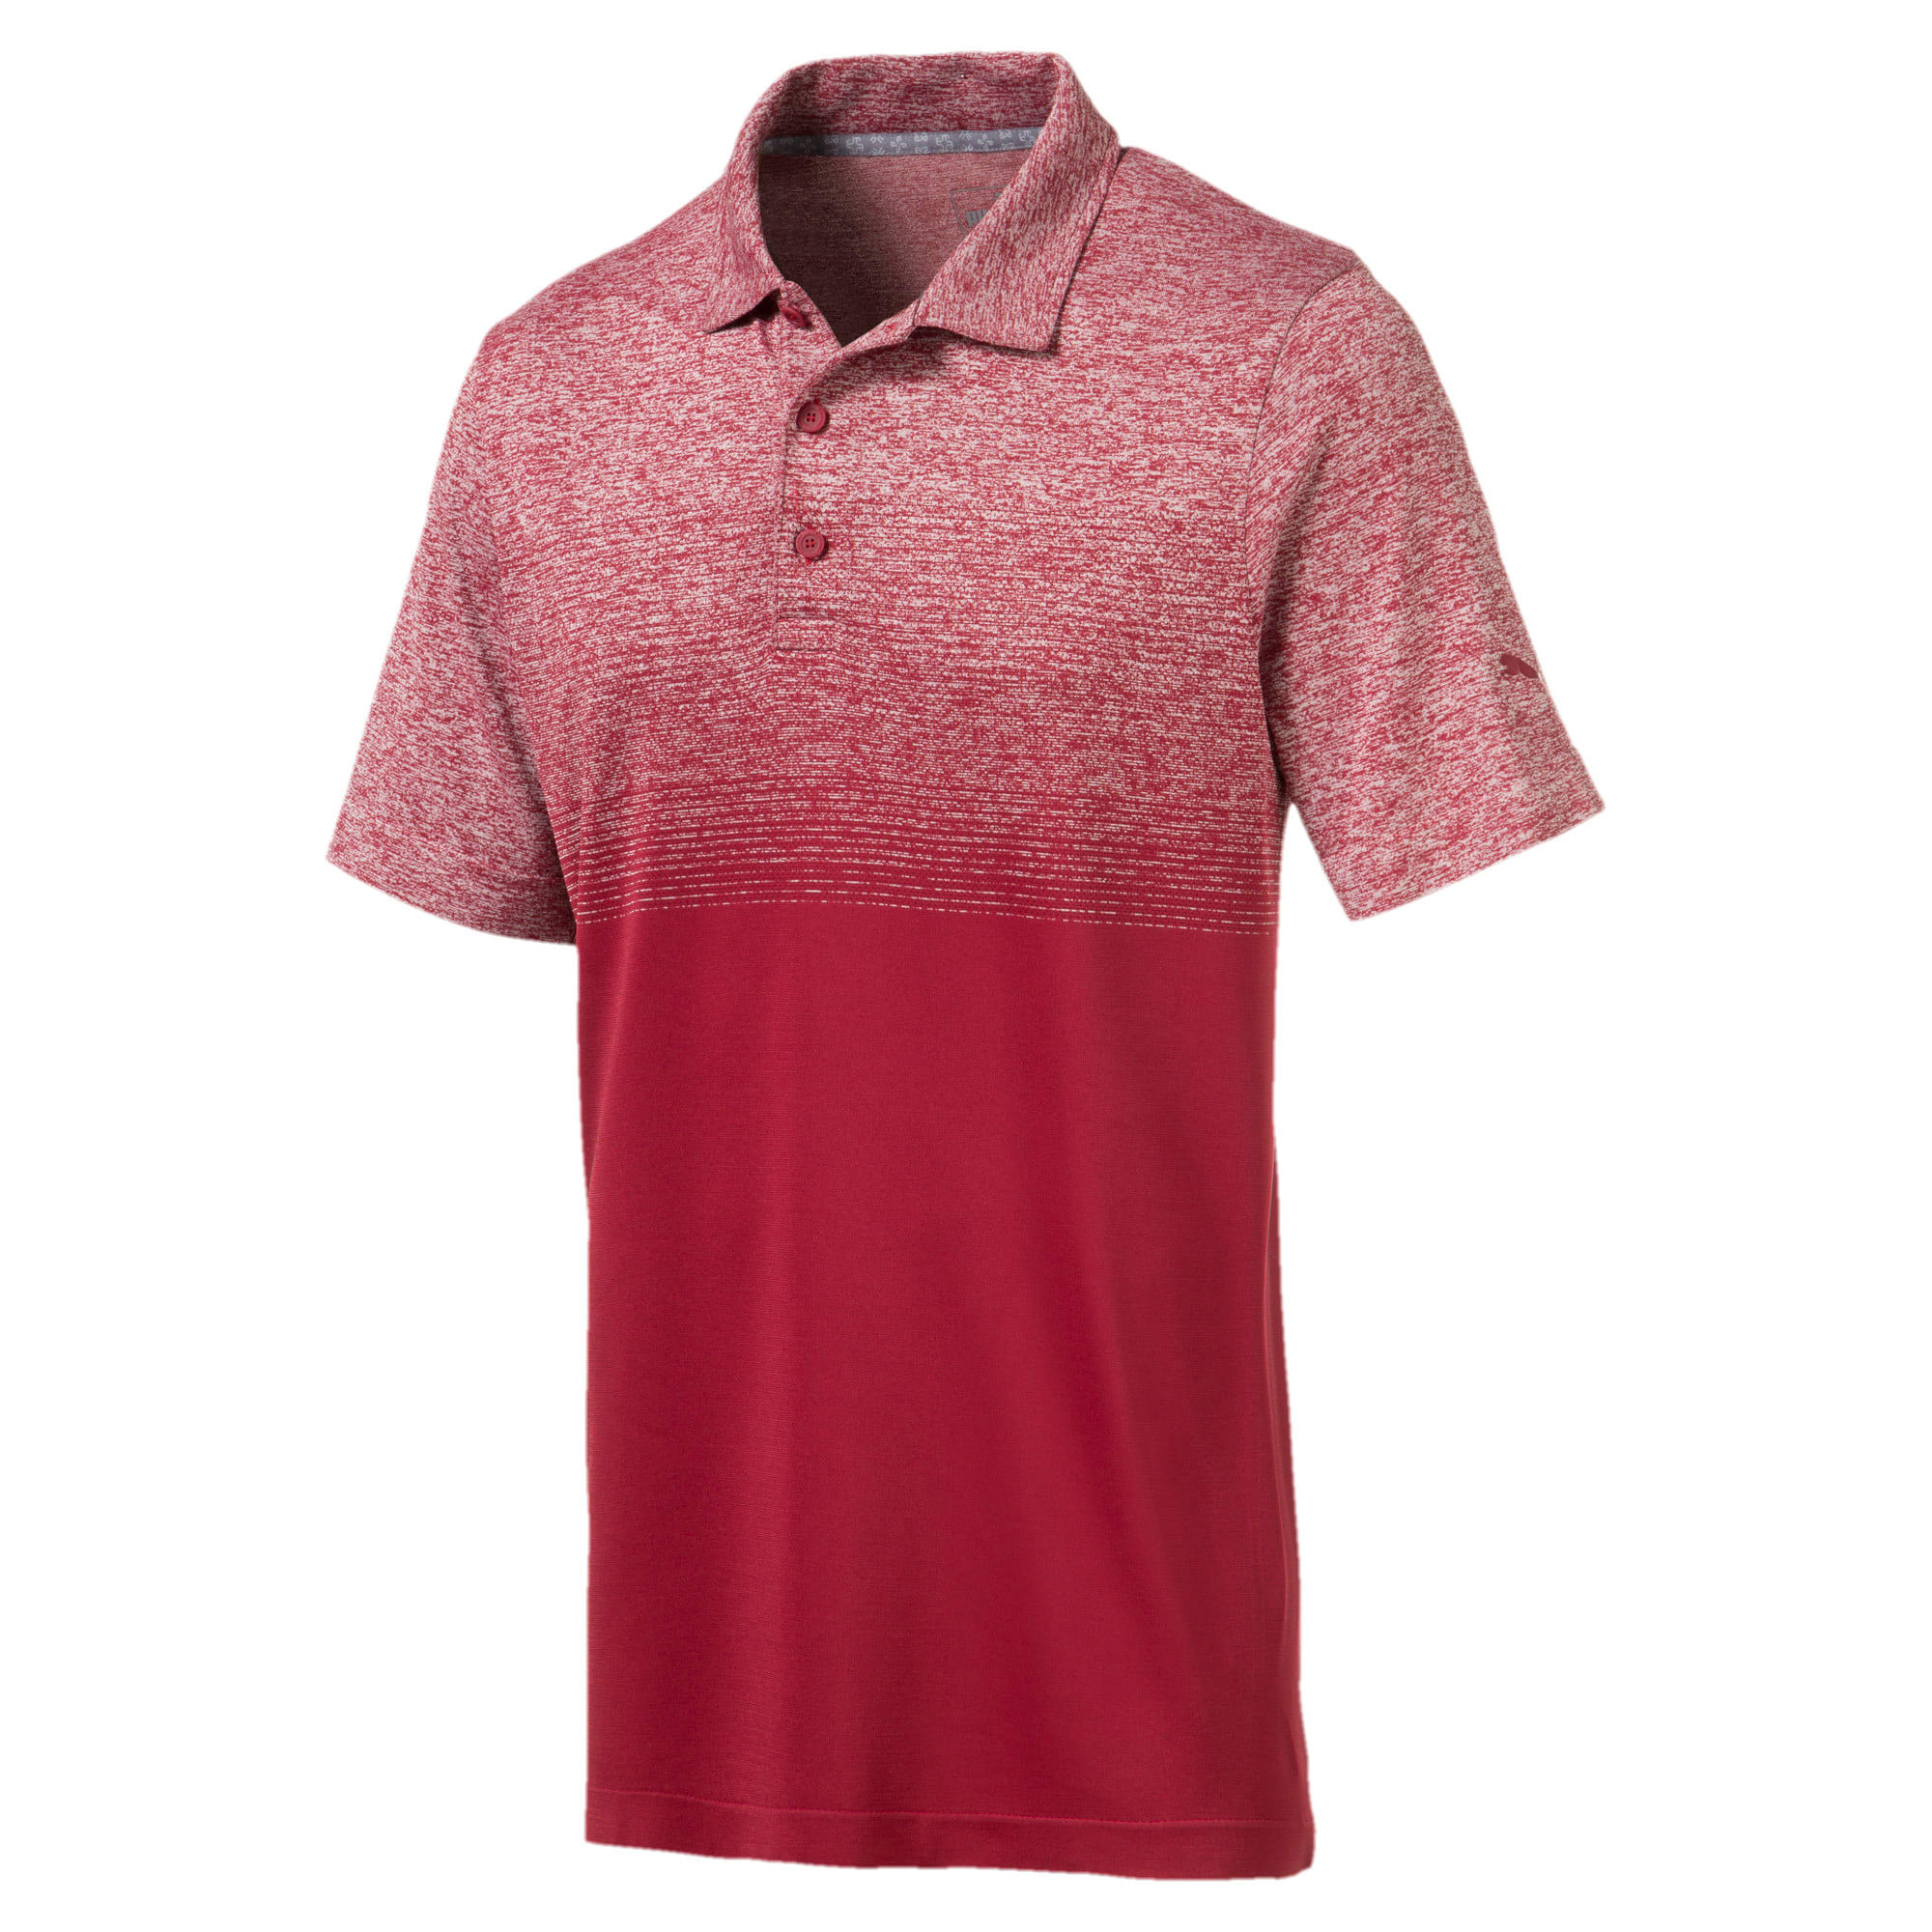 evoKNIT Men's Ombre Polo, Rhubarb, large